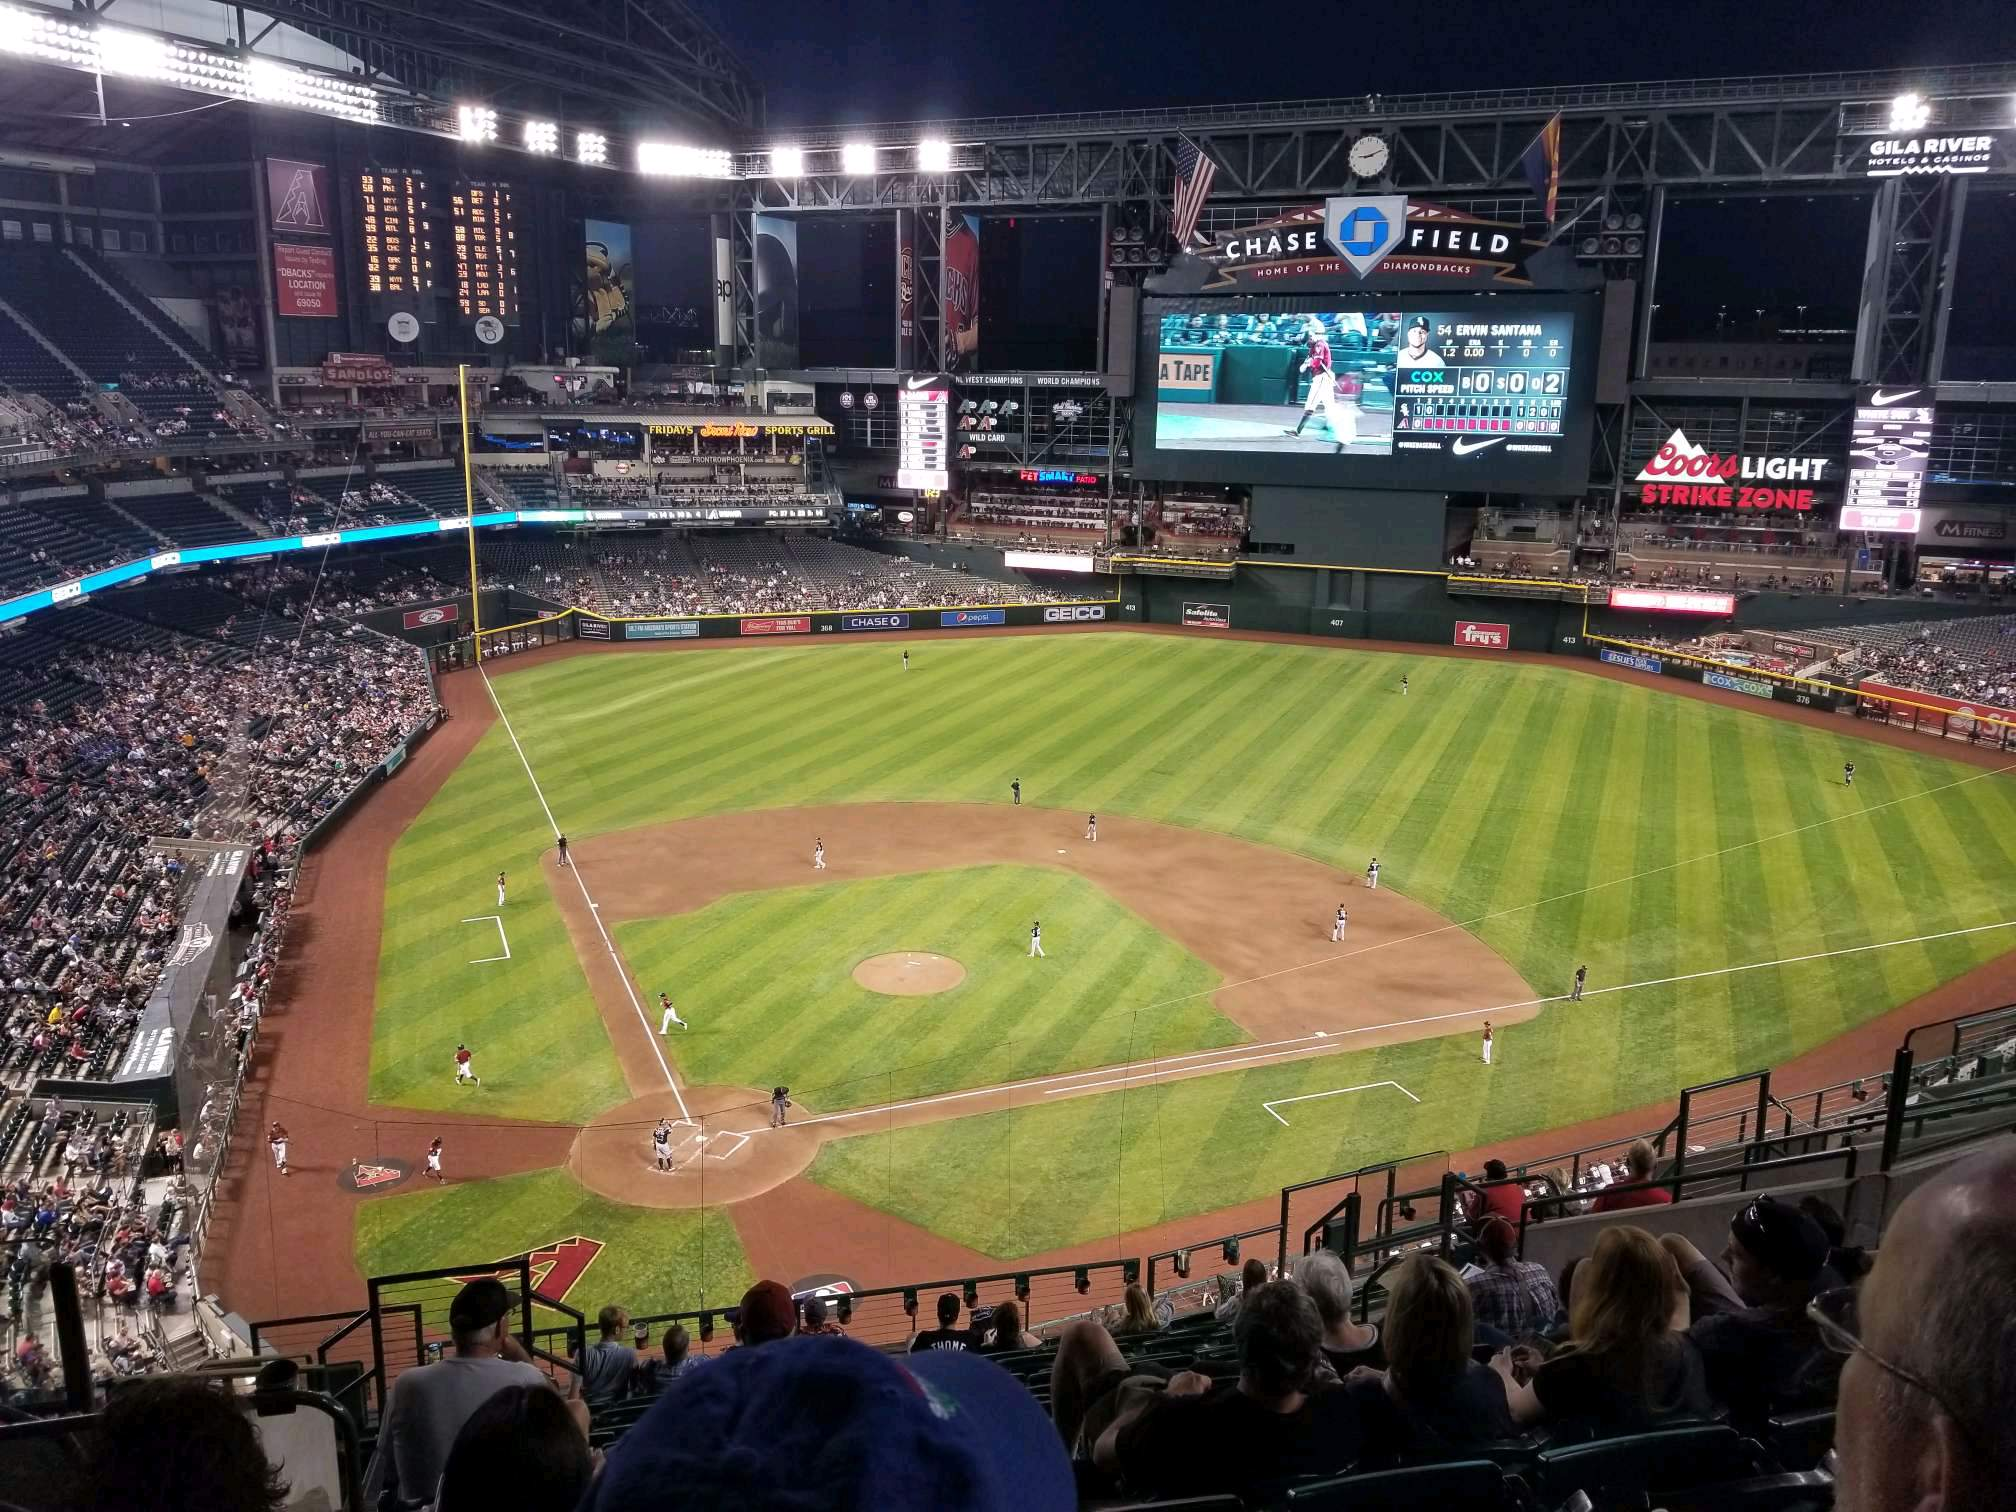 Chase Field Section 313 Row 13 Seat 16